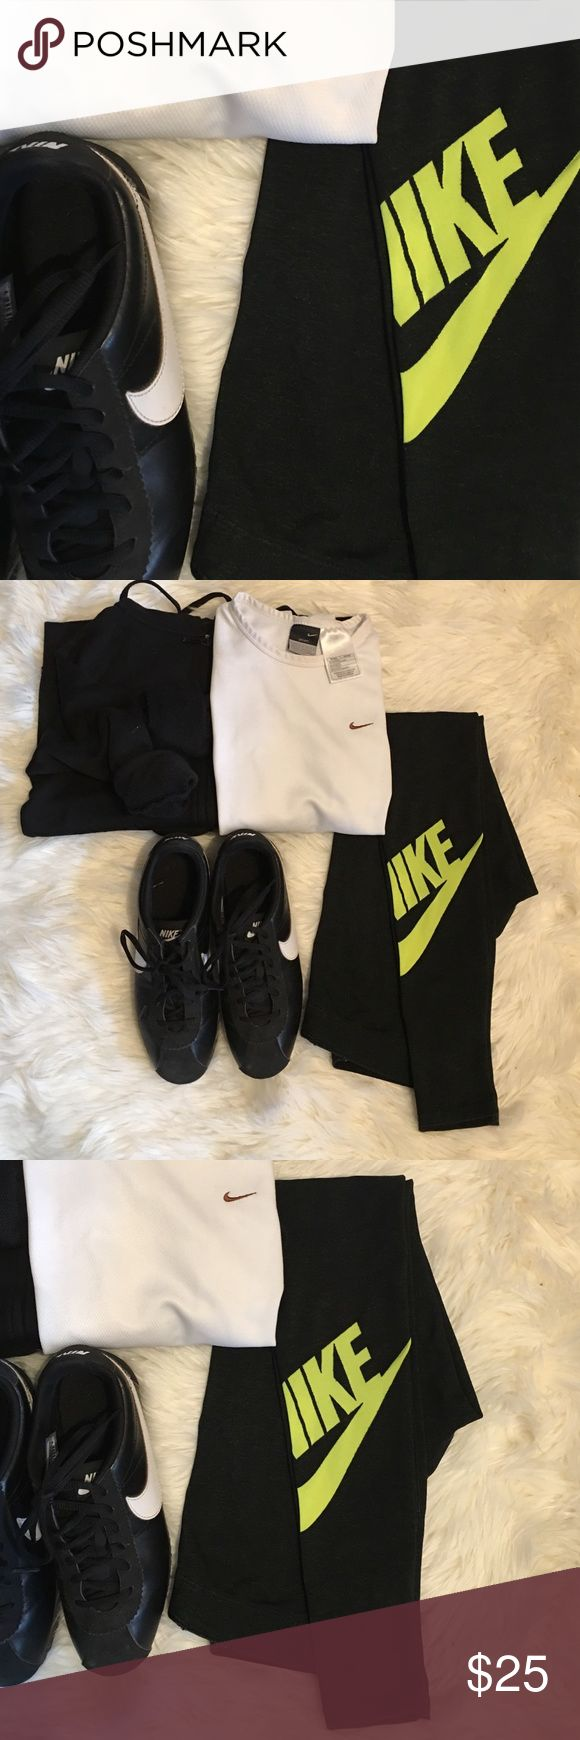 Nike SET Leg-a-see Legging & White L/S Dri fit Top Excellent stretch. Neon Green Nike Logo on the back of the leg calf. Long sleeve dri fit top has great breathability and lightweight. Both are great for workouts and athleisure of course! Nike Pants Leggings